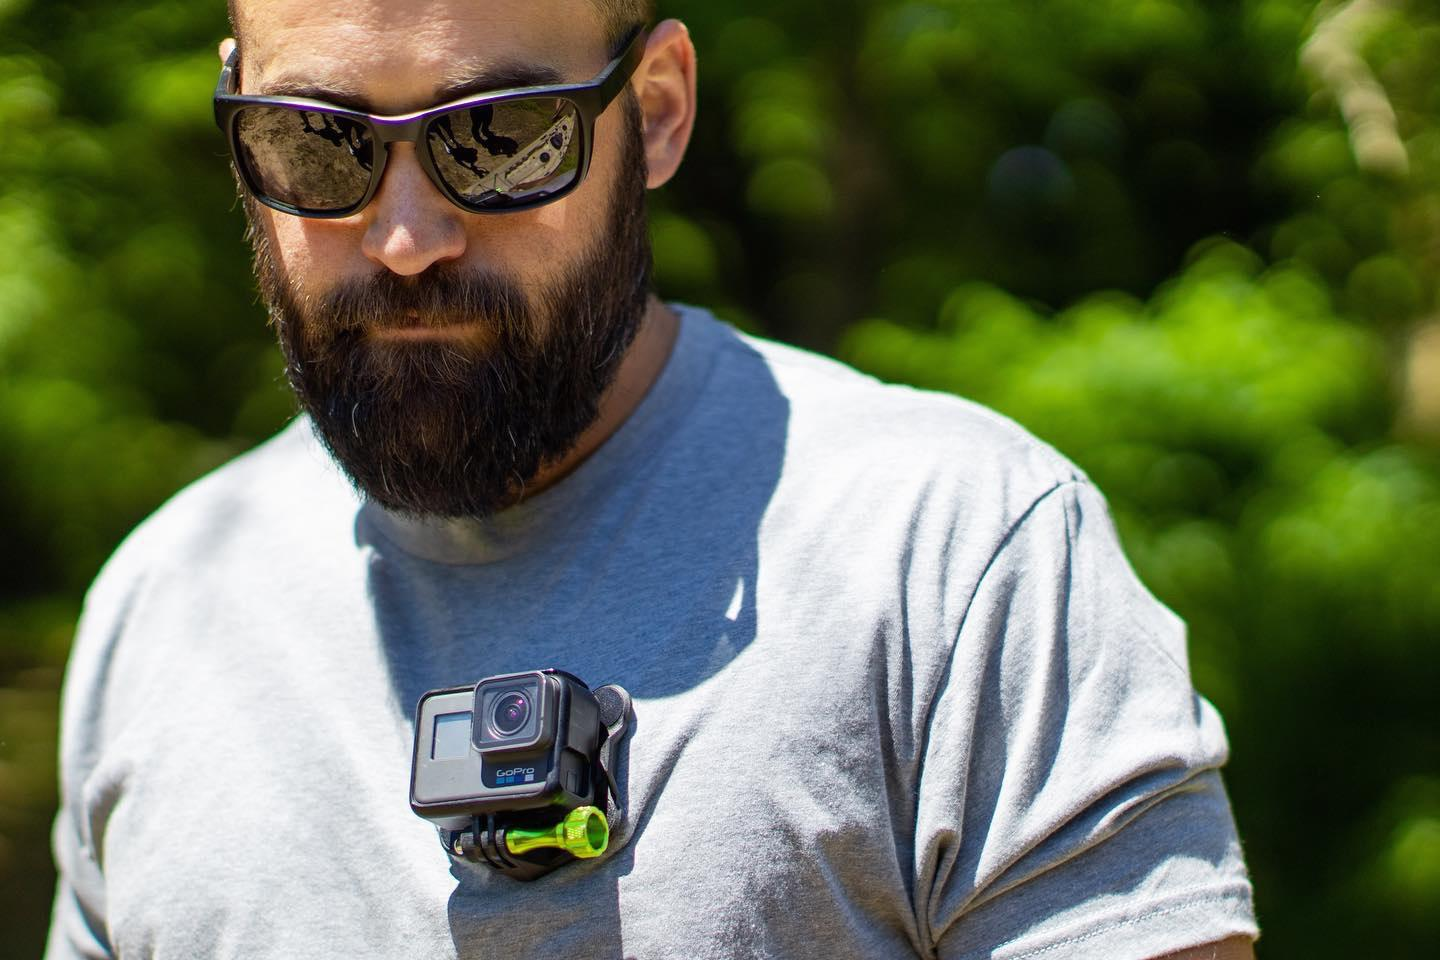 The Snap Mount allows cameras such as the GoPro Hero to be mounted on clothing